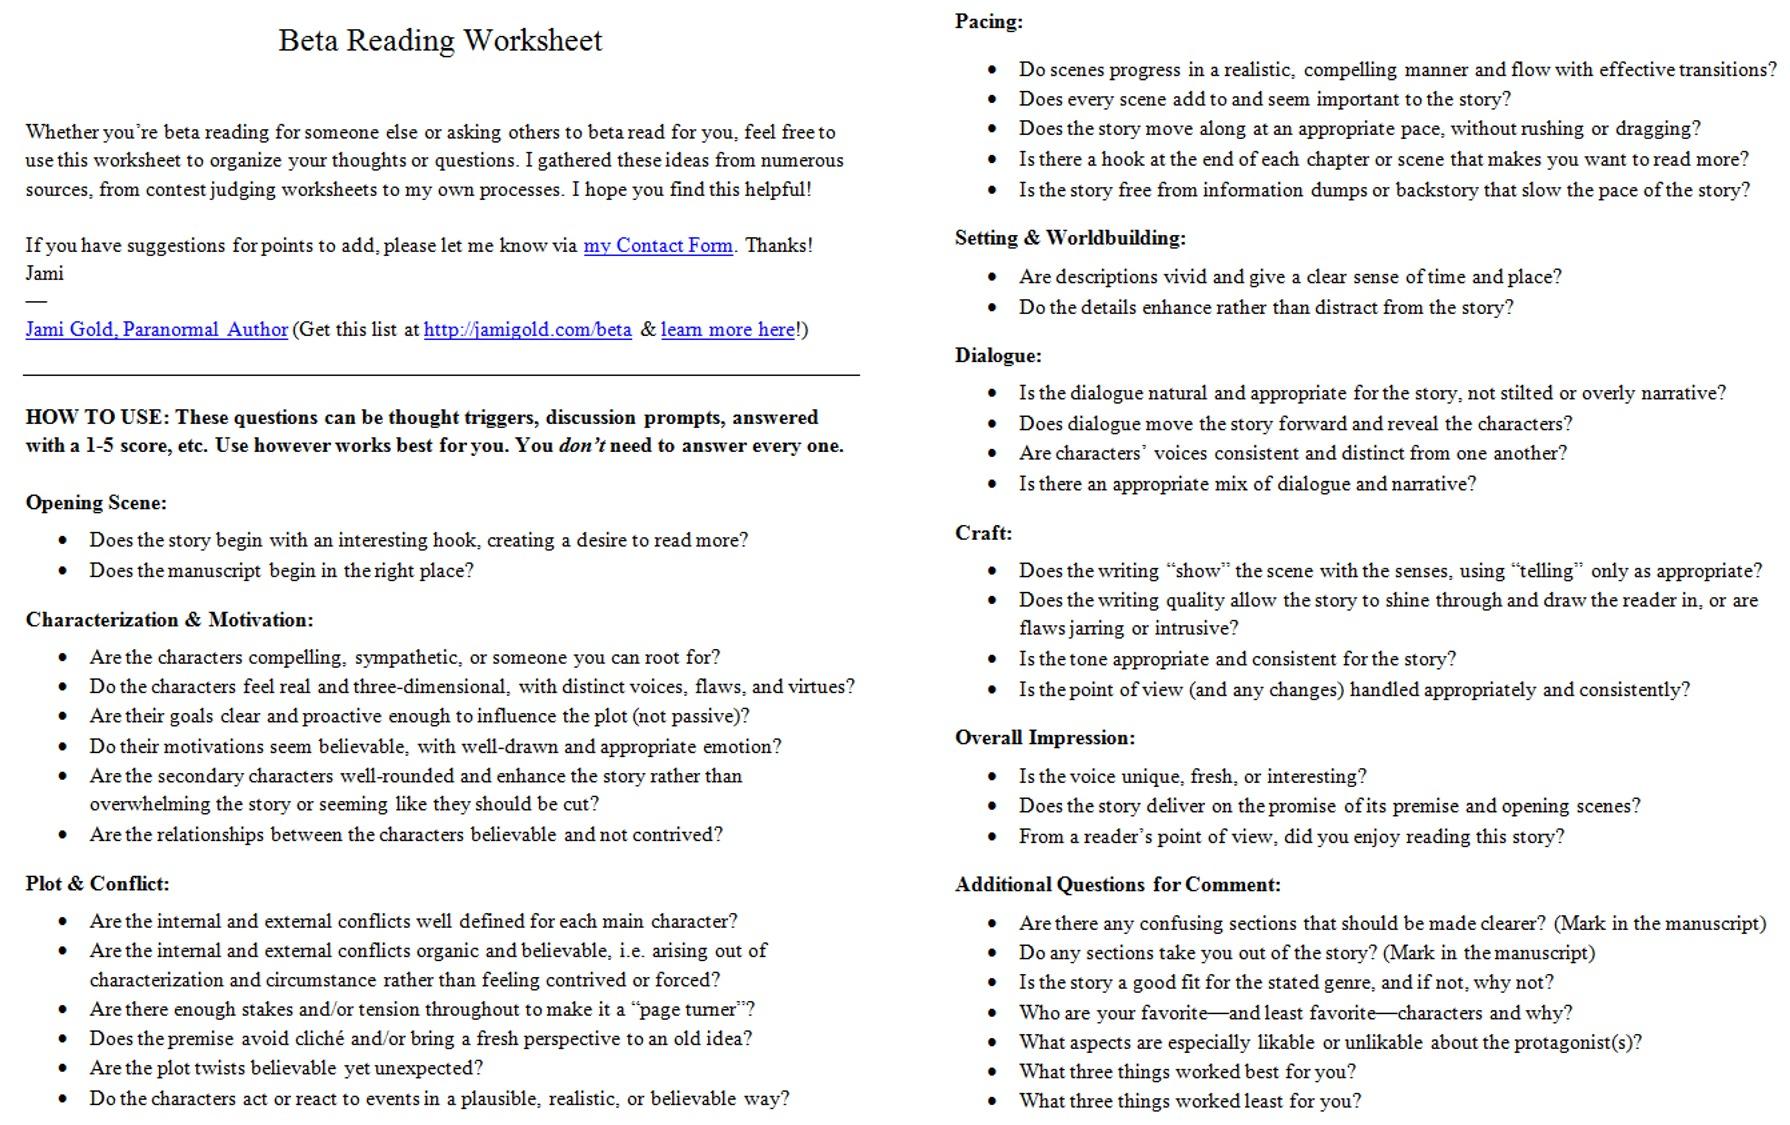 Proatmealus  Terrific Worksheets For Writers  Jami Gold Paranormal Author With Lovable Screen Shot Of The Twopage Beta Reading Worksheet With Appealing Egyptian Numbers Worksheet Also Collective Noun Worksheets For Grade  In Addition Ez Earned Income Credit Worksheet And Handwriting Worksheet Maker Free Download As Well As Consolidate Data In Multiple Worksheets Additionally Music Interval Worksheets From Jamigoldcom With Proatmealus  Lovable Worksheets For Writers  Jami Gold Paranormal Author With Appealing Screen Shot Of The Twopage Beta Reading Worksheet And Terrific Egyptian Numbers Worksheet Also Collective Noun Worksheets For Grade  In Addition Ez Earned Income Credit Worksheet From Jamigoldcom